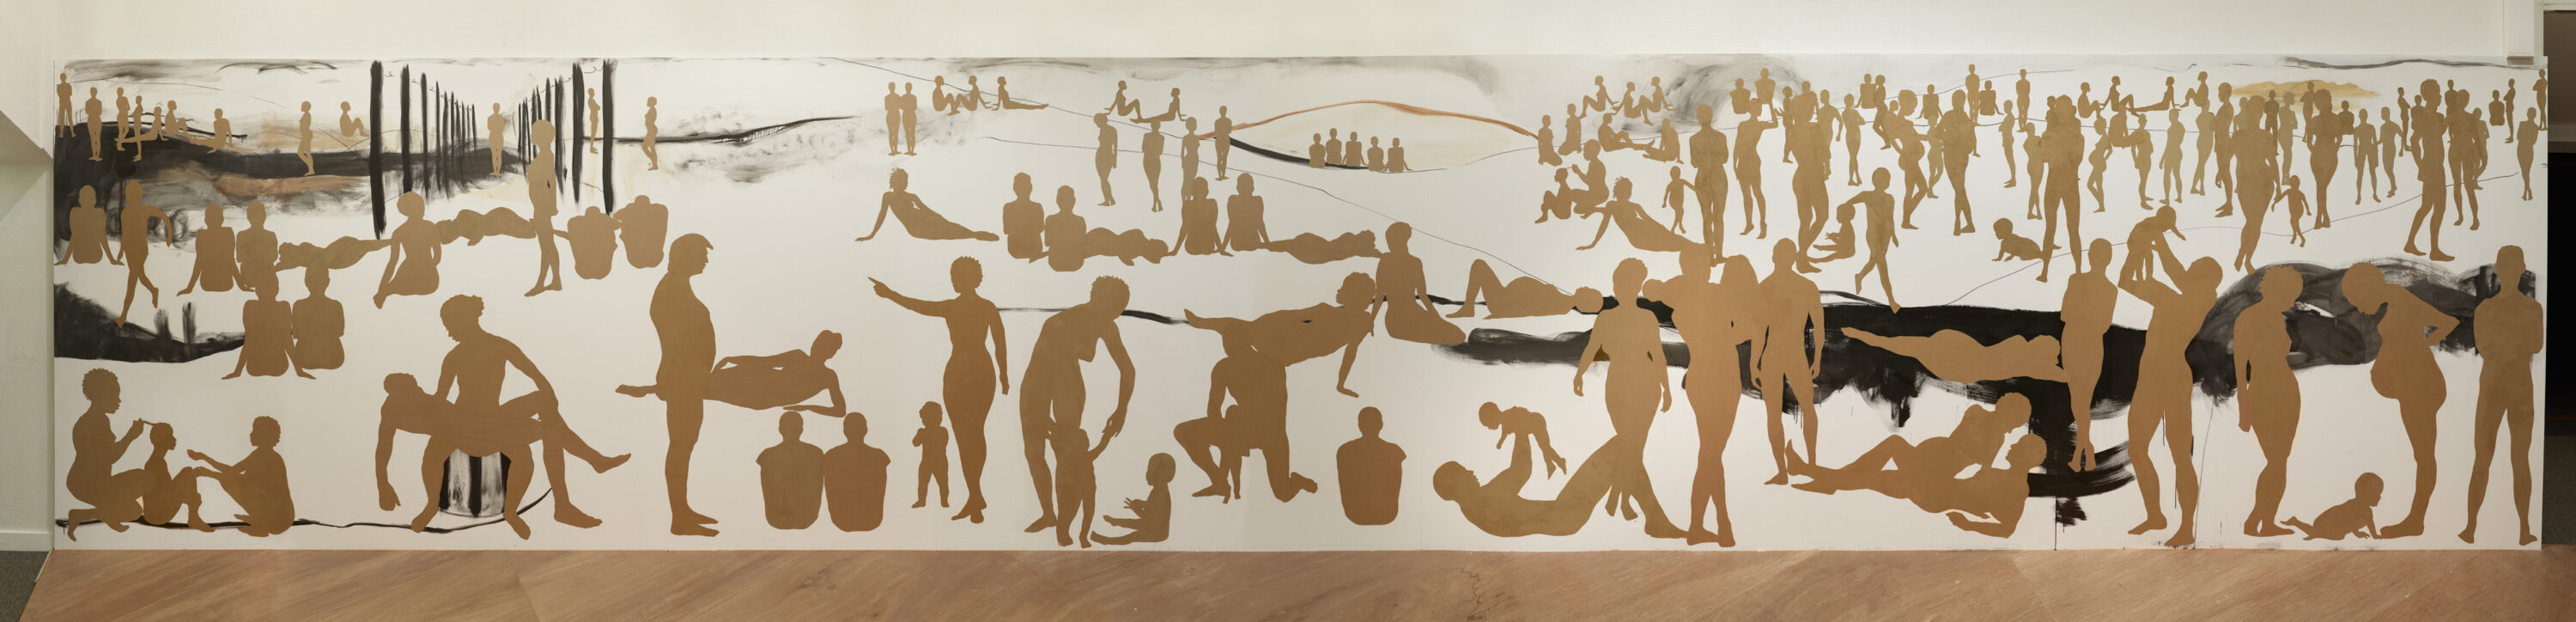 A long rectangular wall with many silhouetted figures made out of brown paper. The figures are of men, women and children in different positions as if in a landscape. They are different sizes to indicate foreground, middle ground and background.